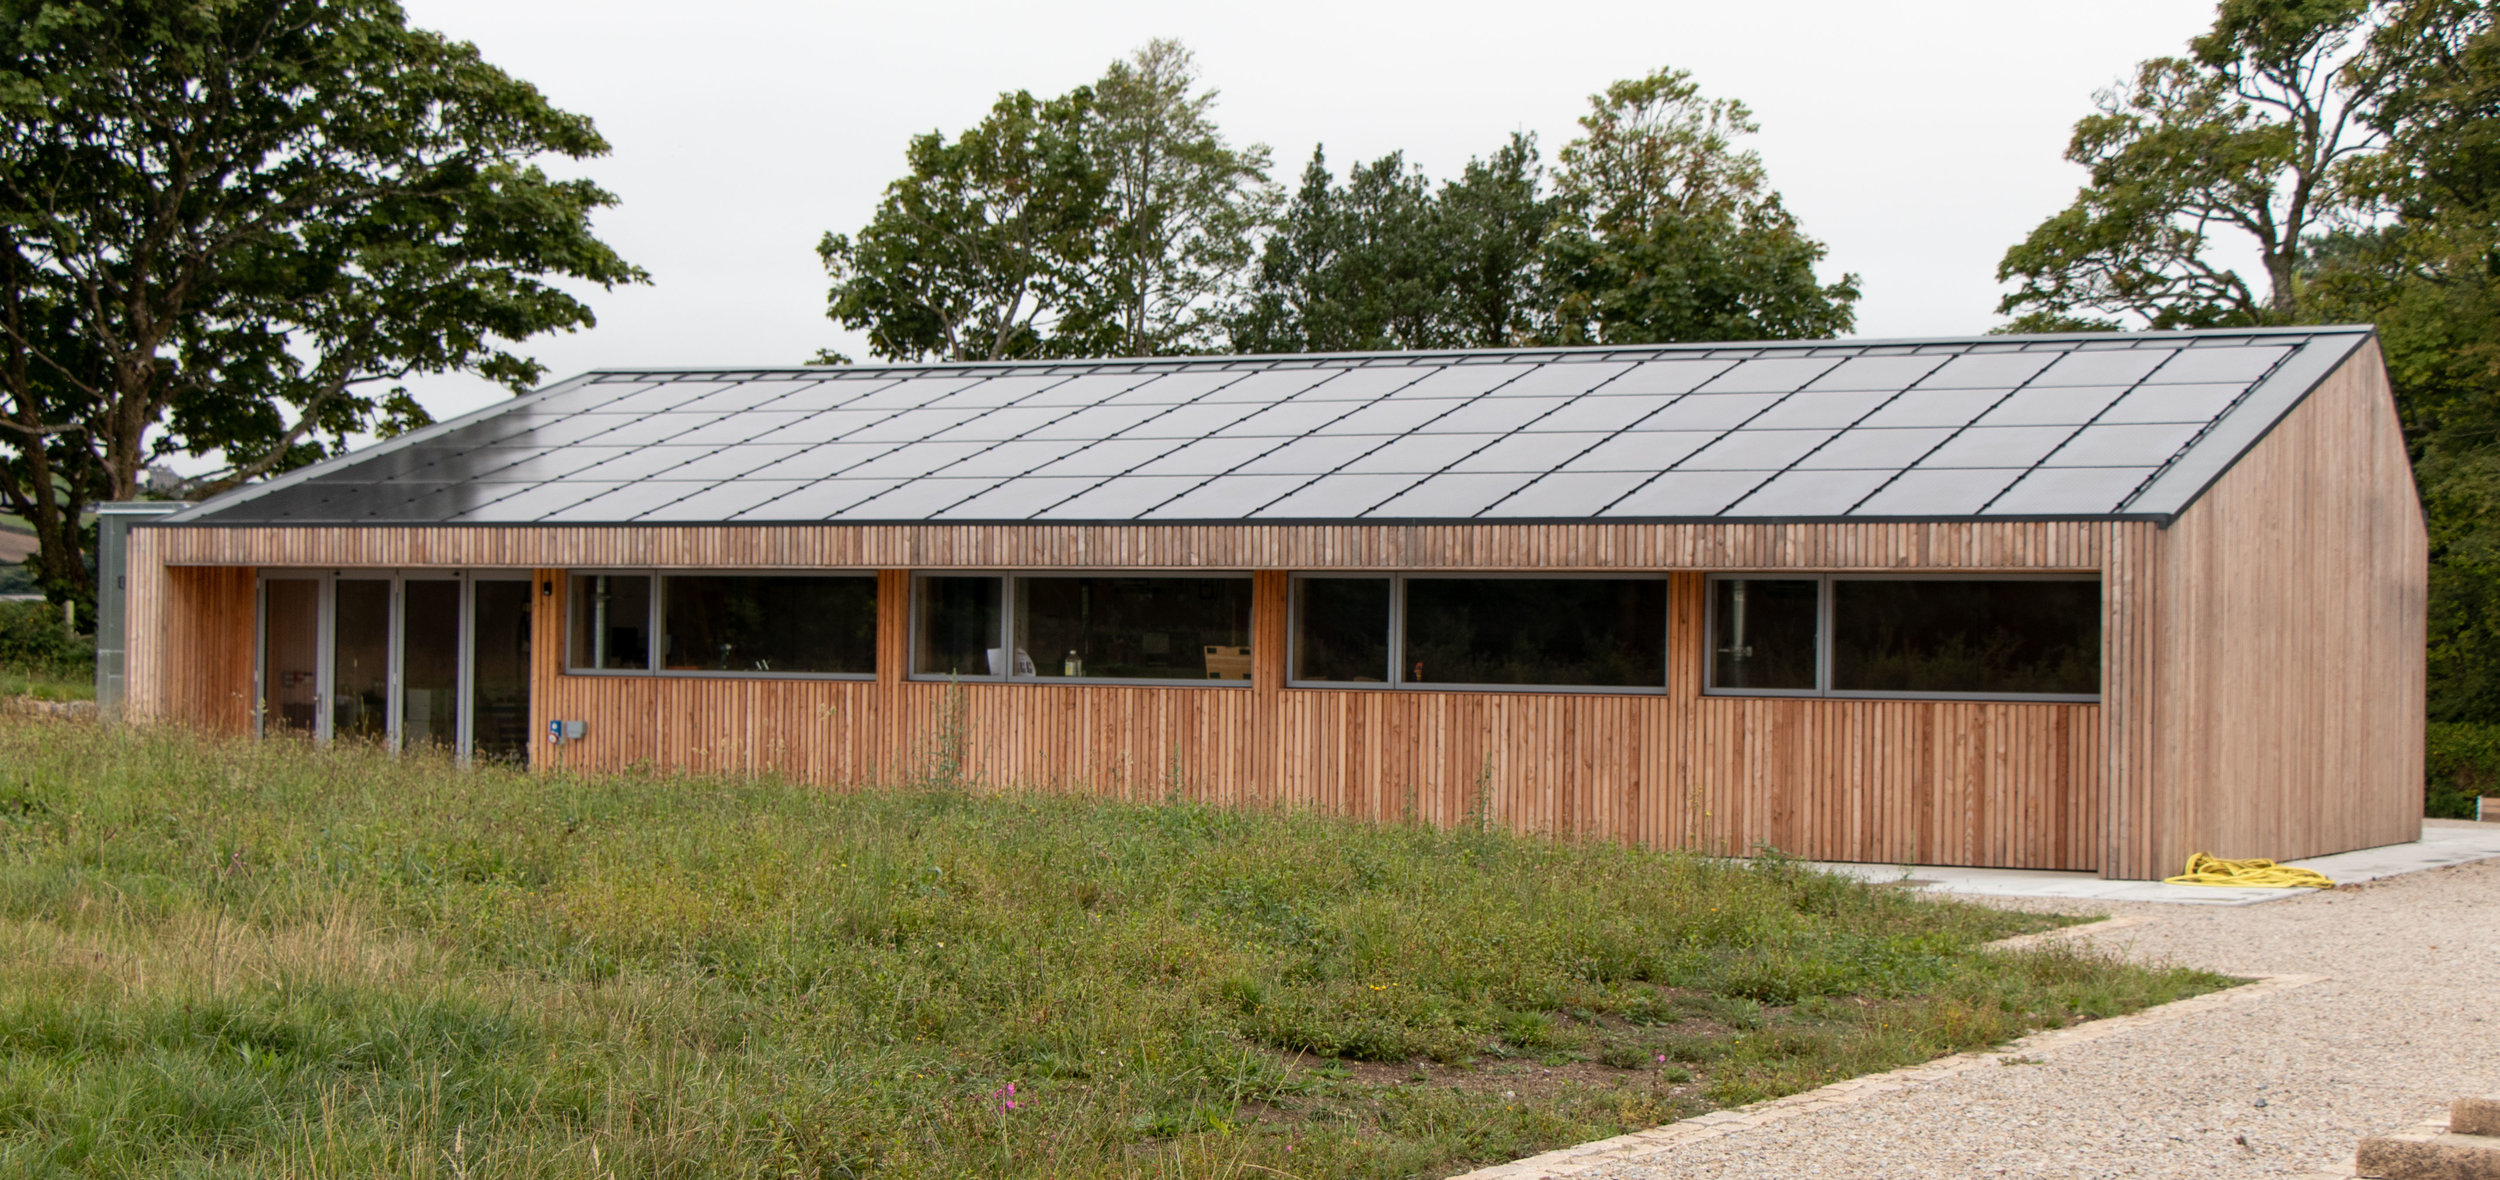 Solar panels run across James Smith Designs workshop roof, a building designed by James Smith and his brother Tom Smith of Gluckman Smith Architects.